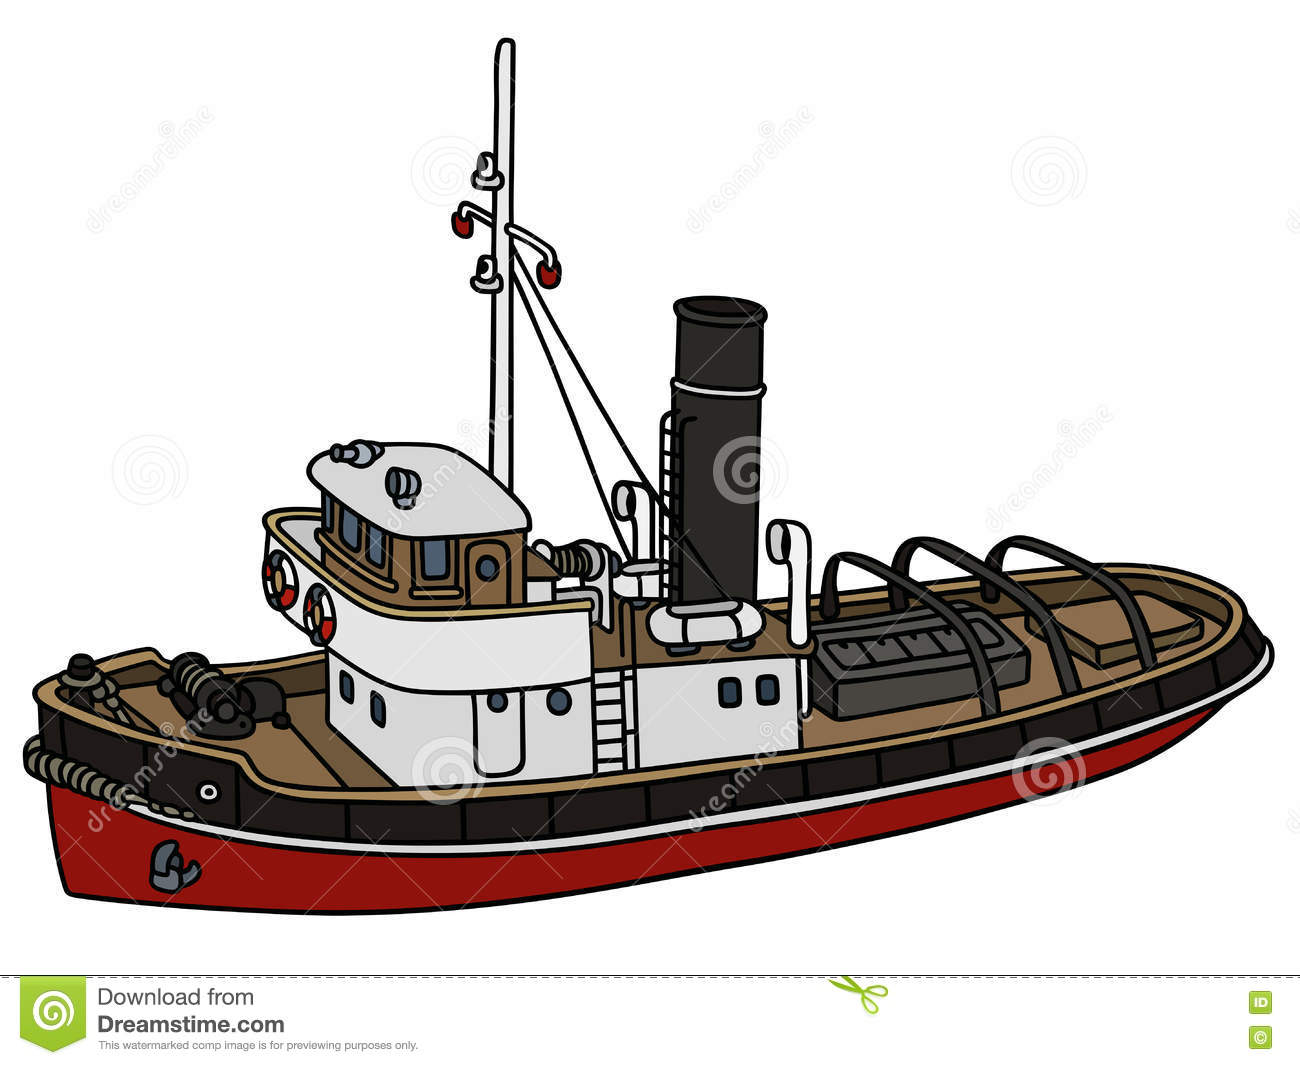 hight resolution of classic tugboat illustrations vectors